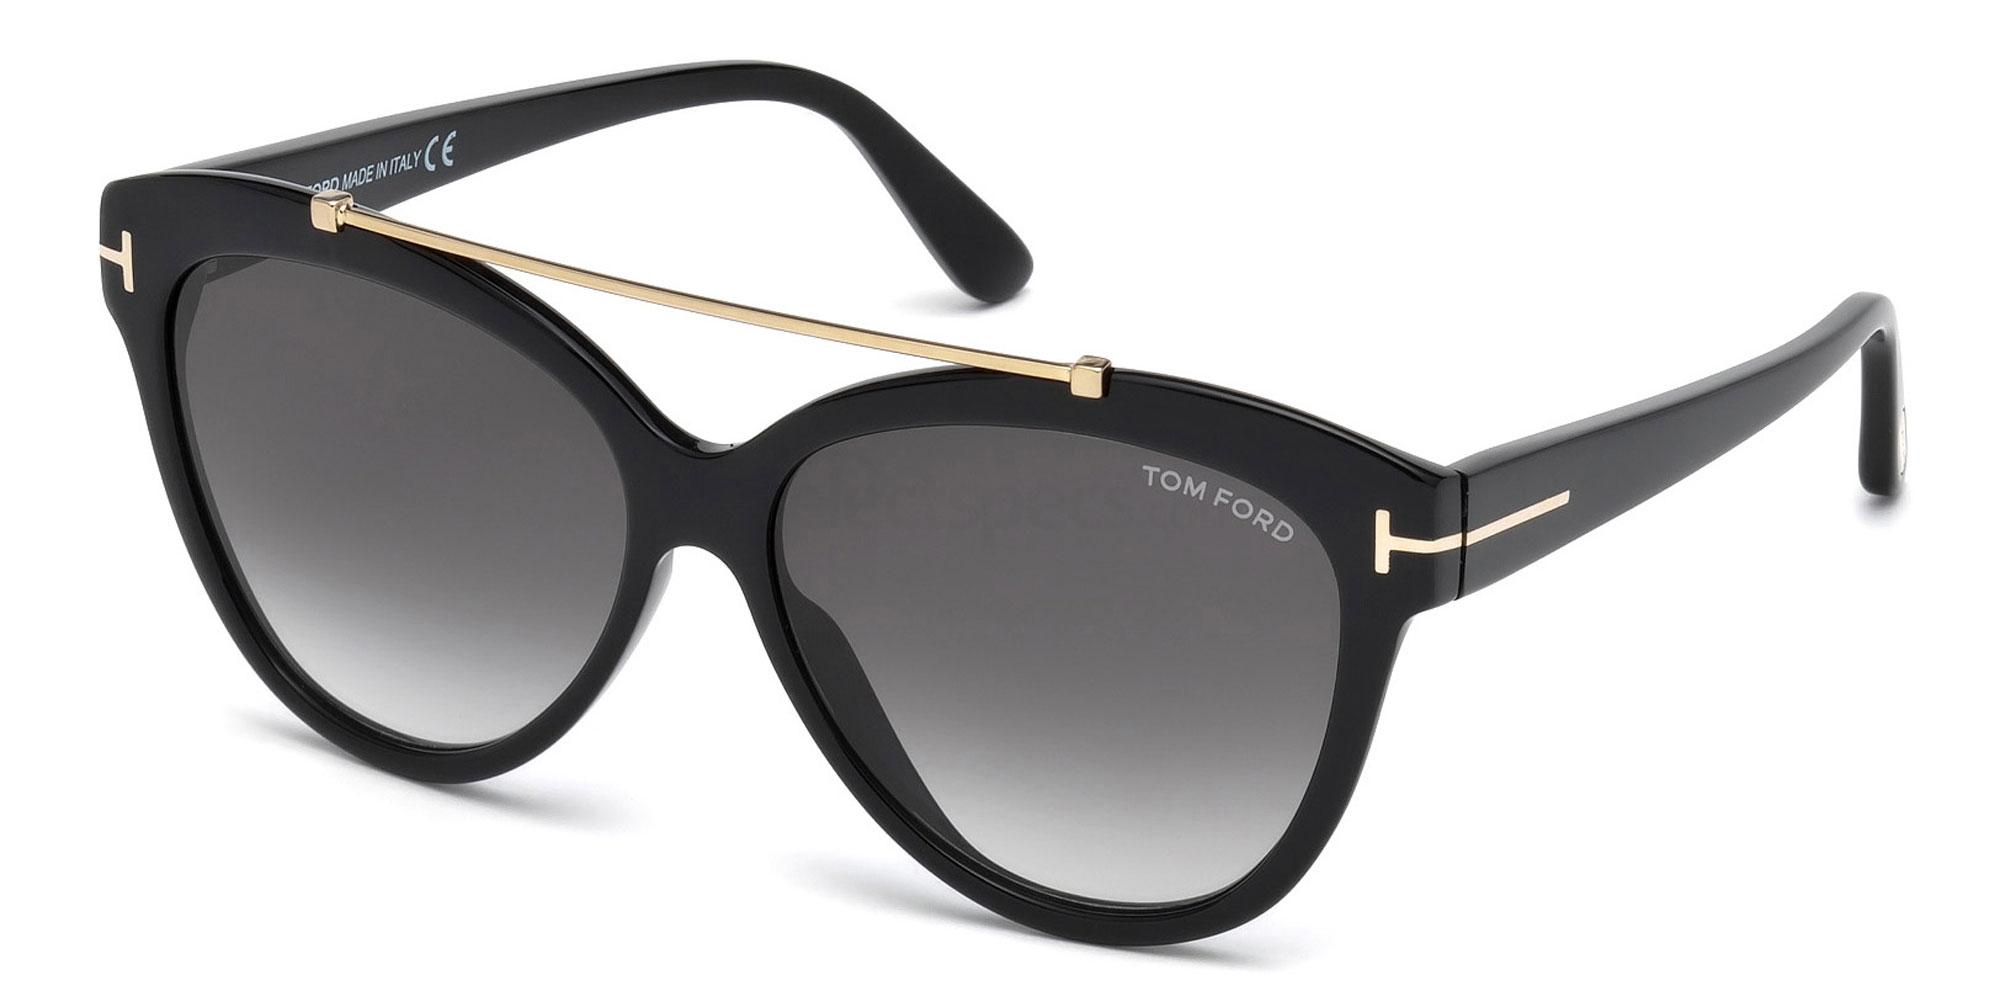 tom ford sunglasses for women